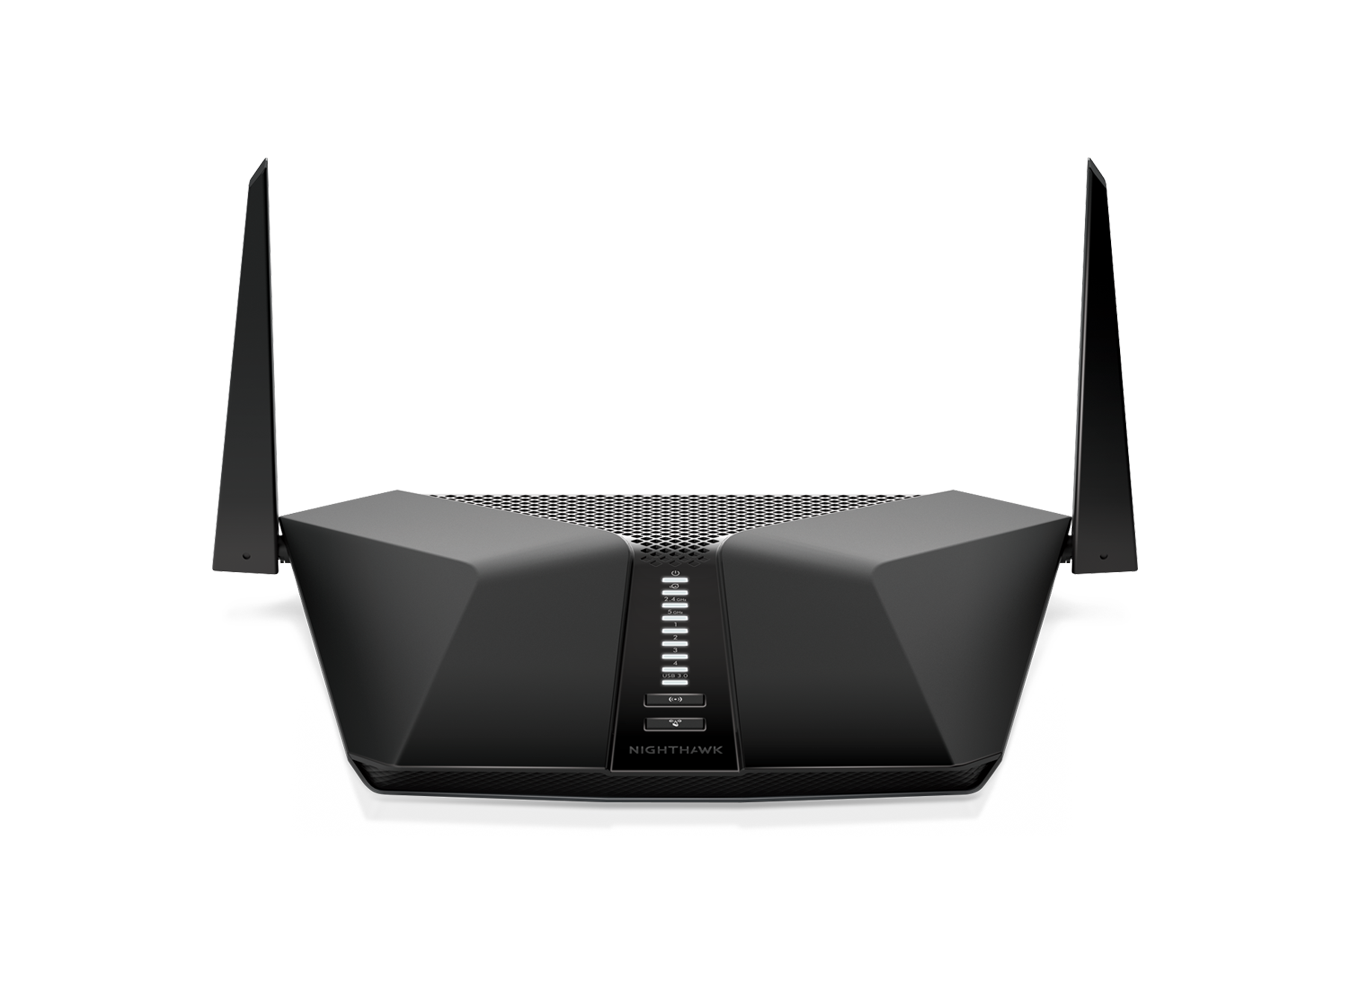 NIGHTHAWK AX4 4-STREAM WI-FI 6-ROUTER